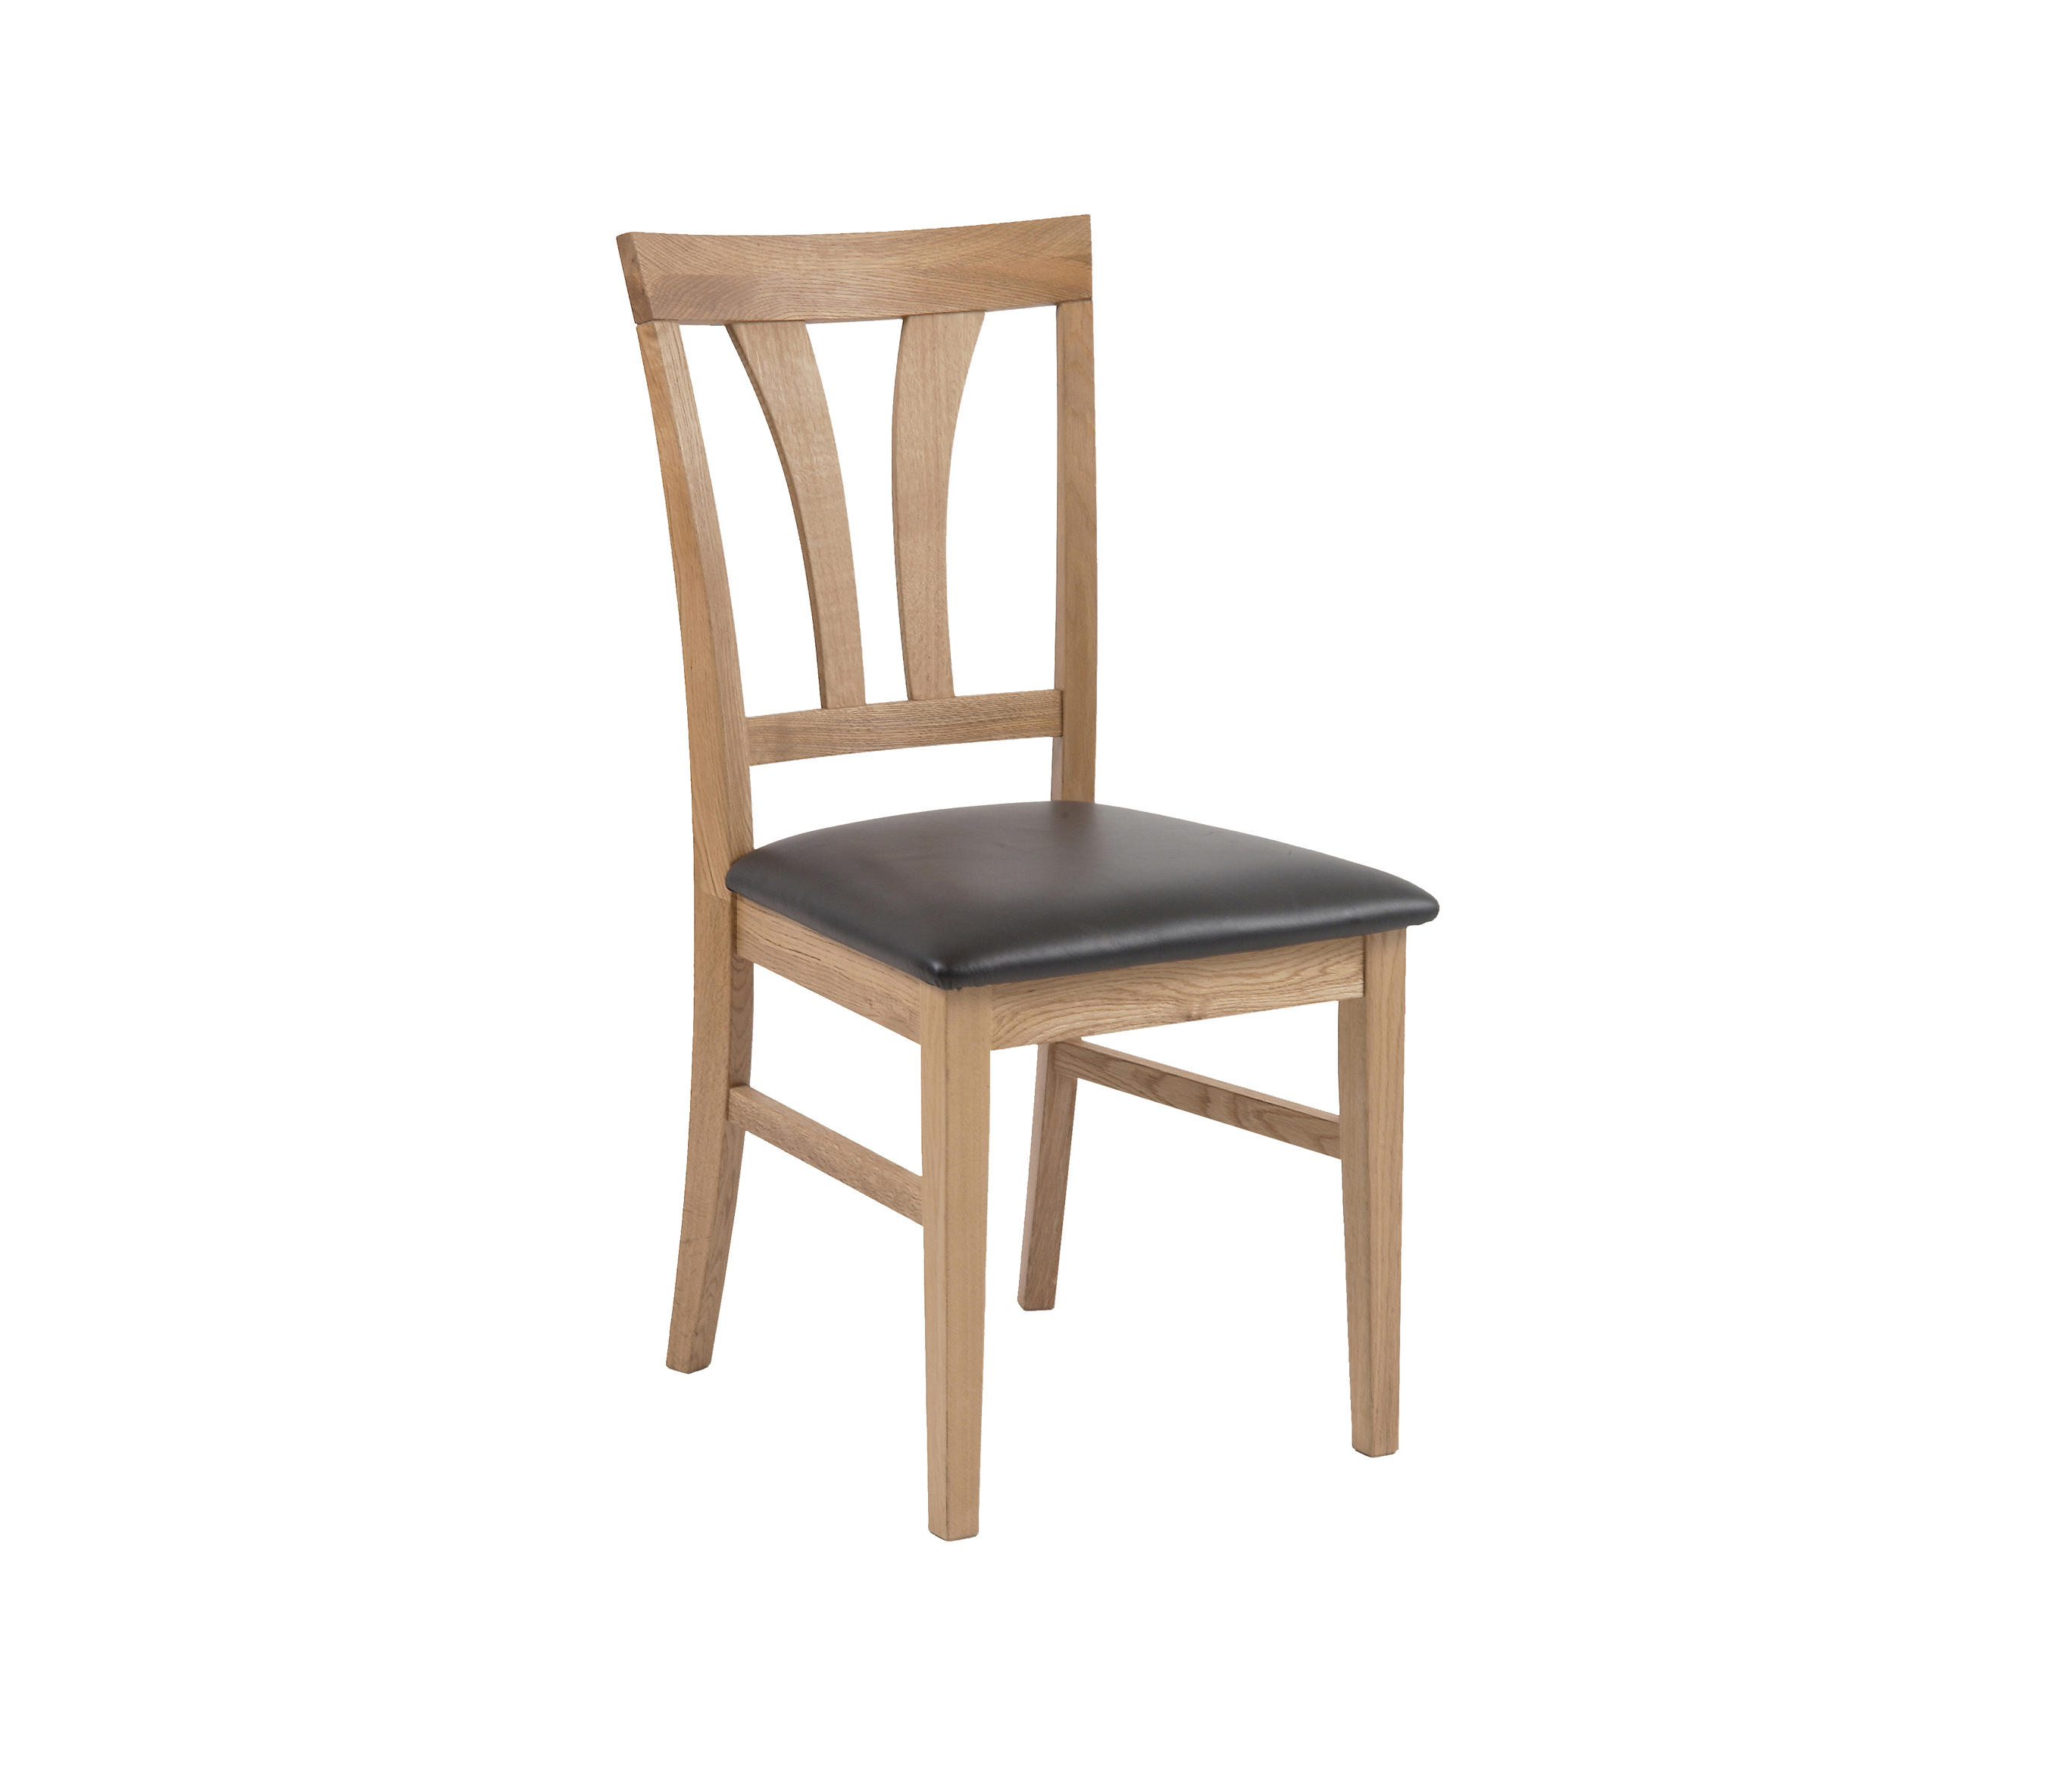 Amazing Inzel Chair V Oak Oiled, Assembled By Hans K | Chairs